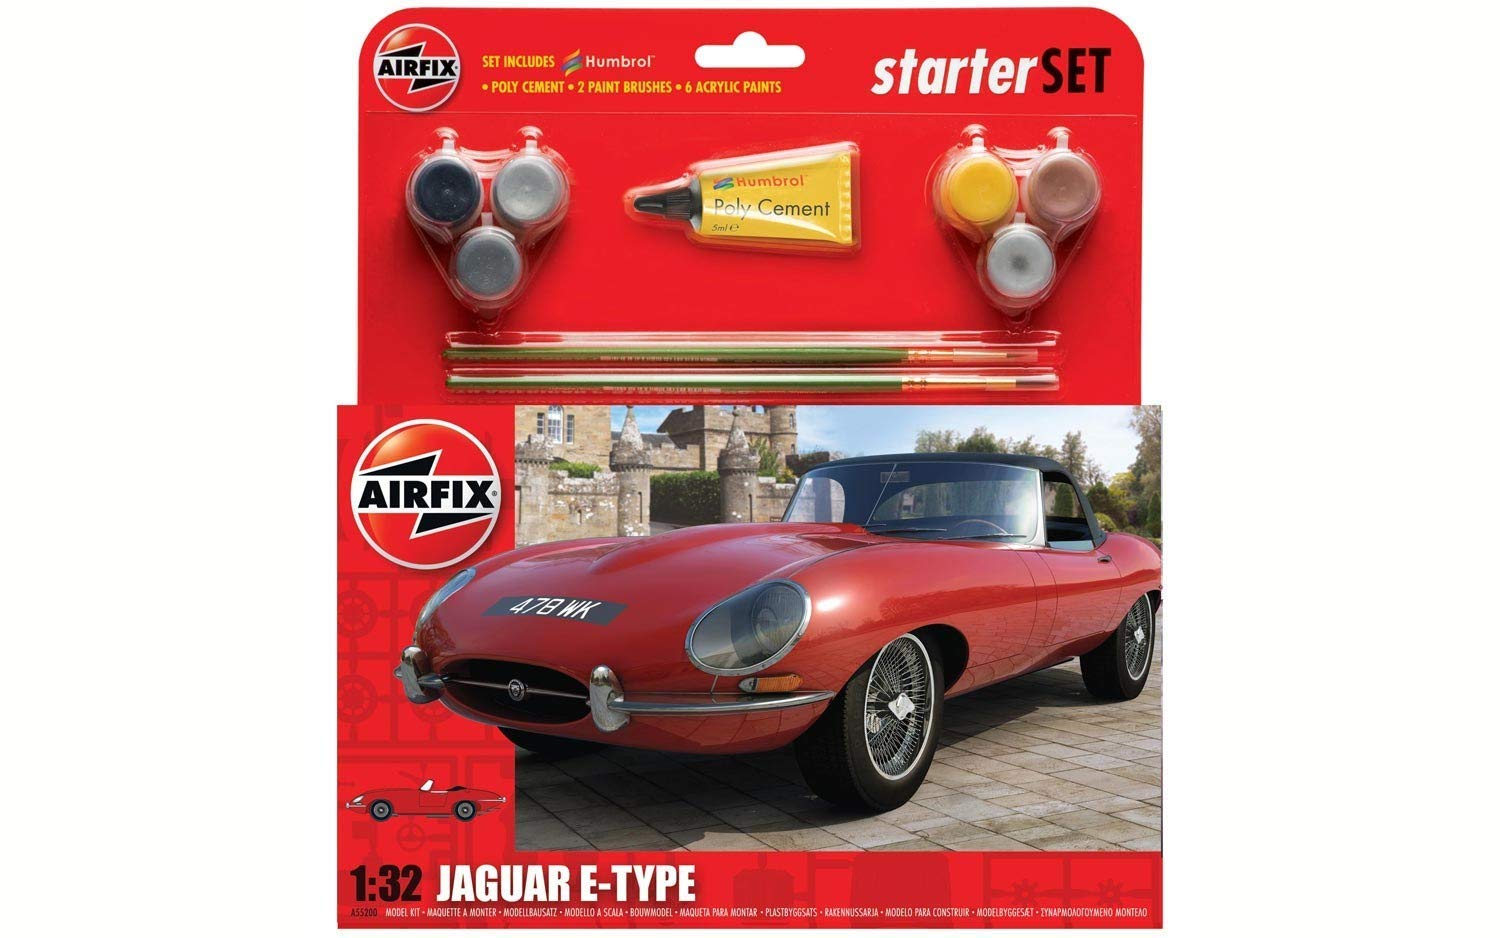 Amazon.com: Airfix Jaguar E-Type Starter Set Plastic Vehicle ...